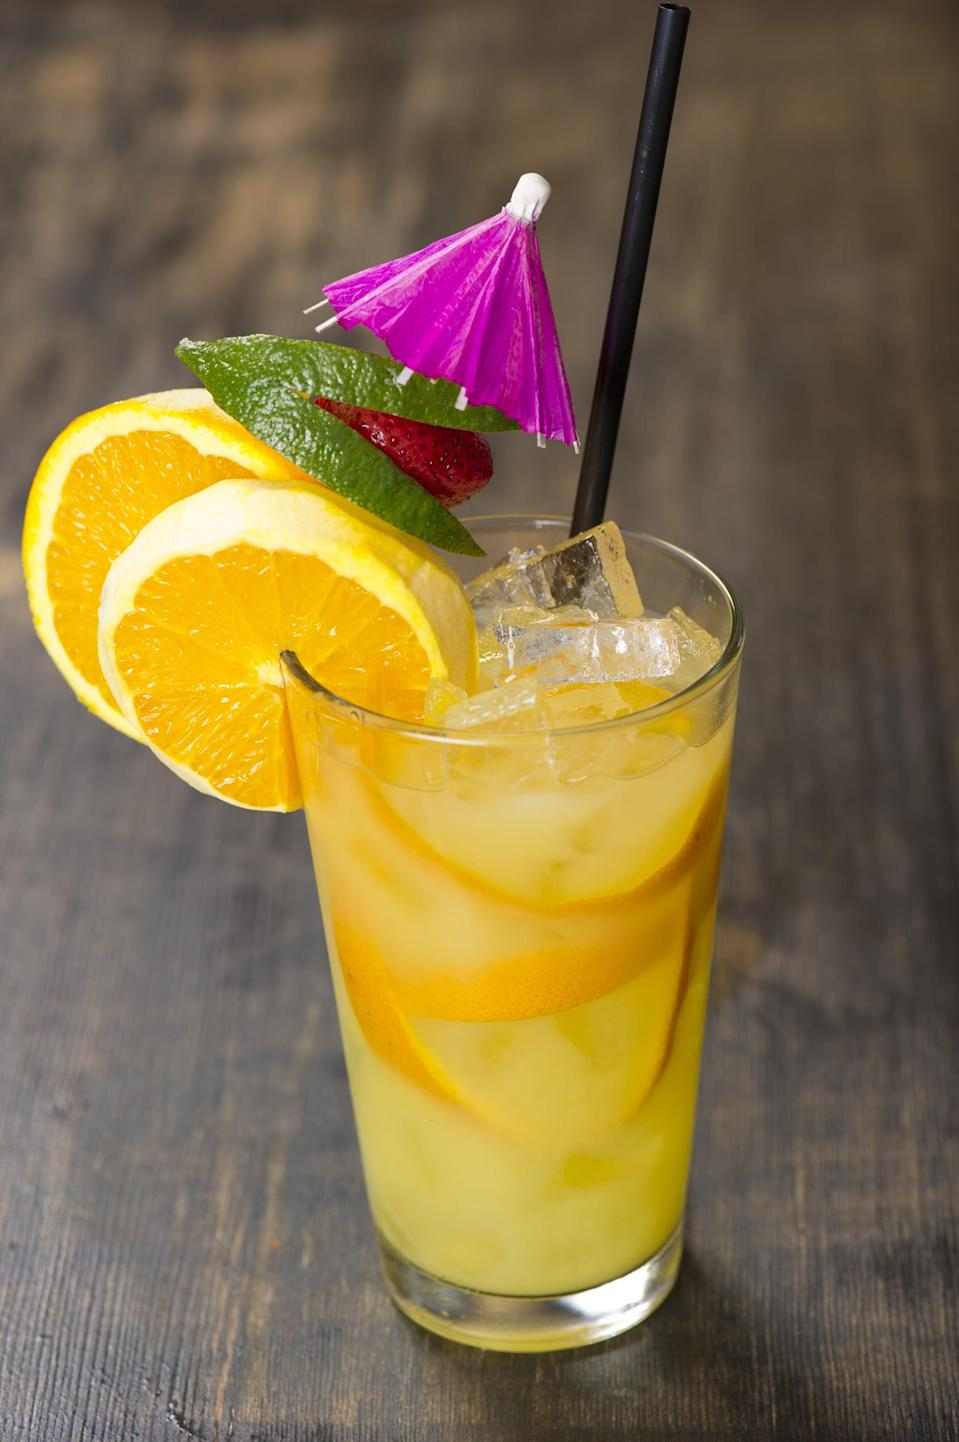 """<p>A lazy weekend in South Dakota calls for a stiff screwdriver, wouldn't you agree? Just mix together vodka and orange juice to get your morning off to a great start.</p> <p><strong>Get the recipe</strong>: <a href=""""https://www.popsugar.com/buy?url=https%3A%2F%2Famandascookin.com%2Fscrewdriver-drink-recipe%2F&p_name=screwdriver&retailer=amandascookin.com&evar1=yum%3Aus&evar9=47471653&evar98=https%3A%2F%2Fwww.popsugar.com%2Ffood%2Fphoto-gallery%2F47471653%2Fimage%2F47475209%2FSouth-Dakota-Screwdriver&list1=cocktails%2Cdrinks%2Calcohol%2Crecipes&prop13=api&pdata=1"""" class=""""link rapid-noclick-resp"""" rel=""""nofollow noopener"""" target=""""_blank"""" data-ylk=""""slk:screwdriver"""">screwdriver</a></p>"""